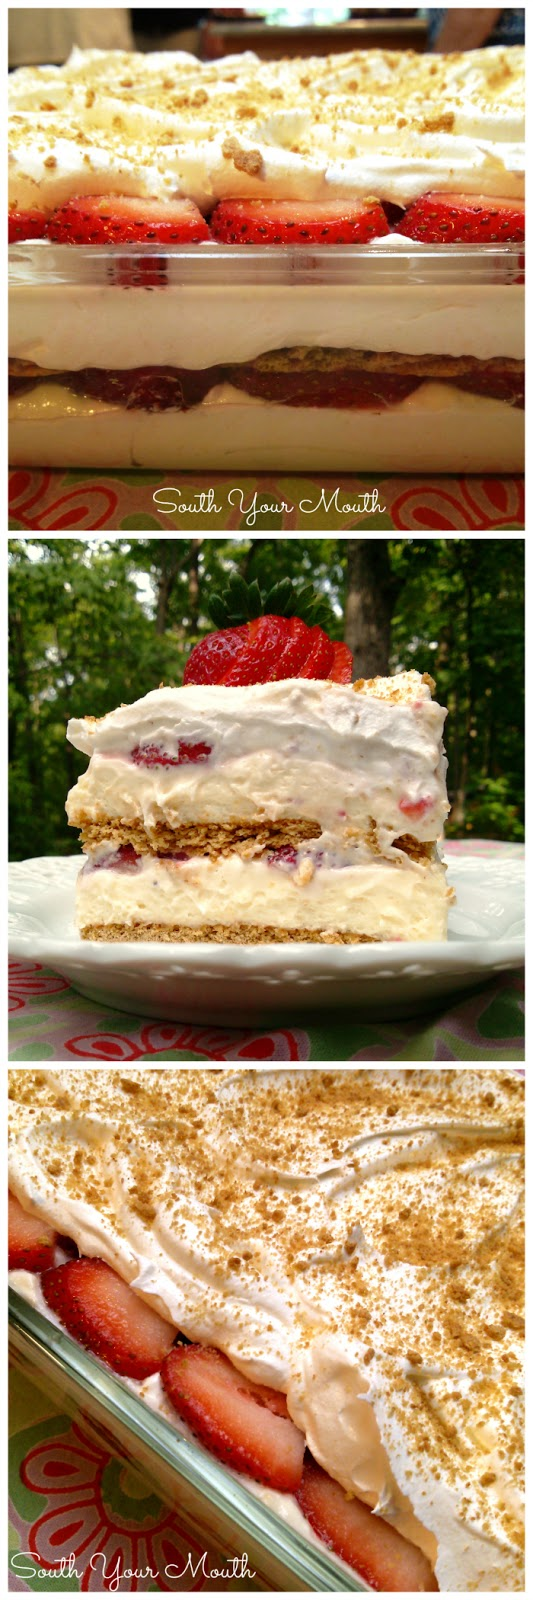 Strawberry Cream Cheese Icebox Cake! An easy no-bake layered dessert with graham crackers, cheesecake filling and fresh strawberries. #dessert #strawberries #icebox